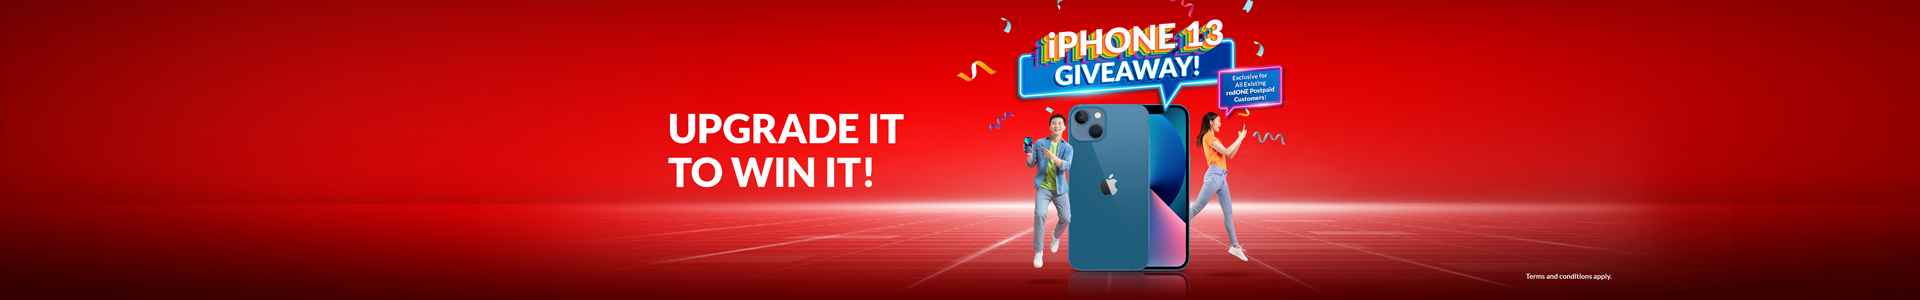 Win an iPhone 13 monthly from now until December 2021!